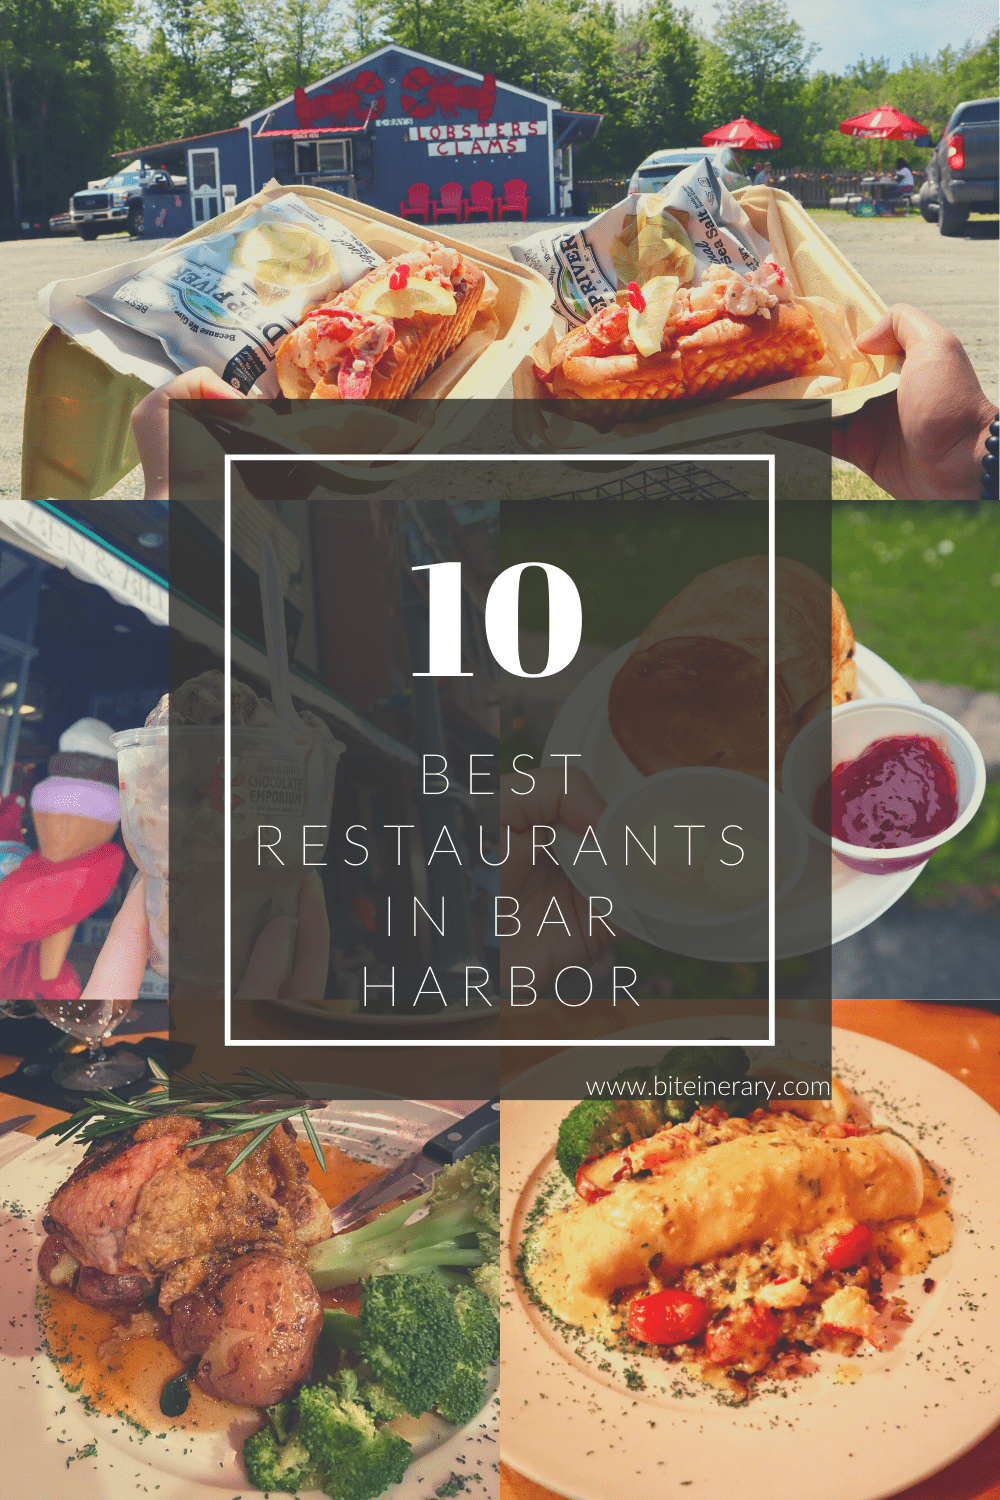 10 Best Places to Eat in Bar Harbor, Maine by Biteinerary